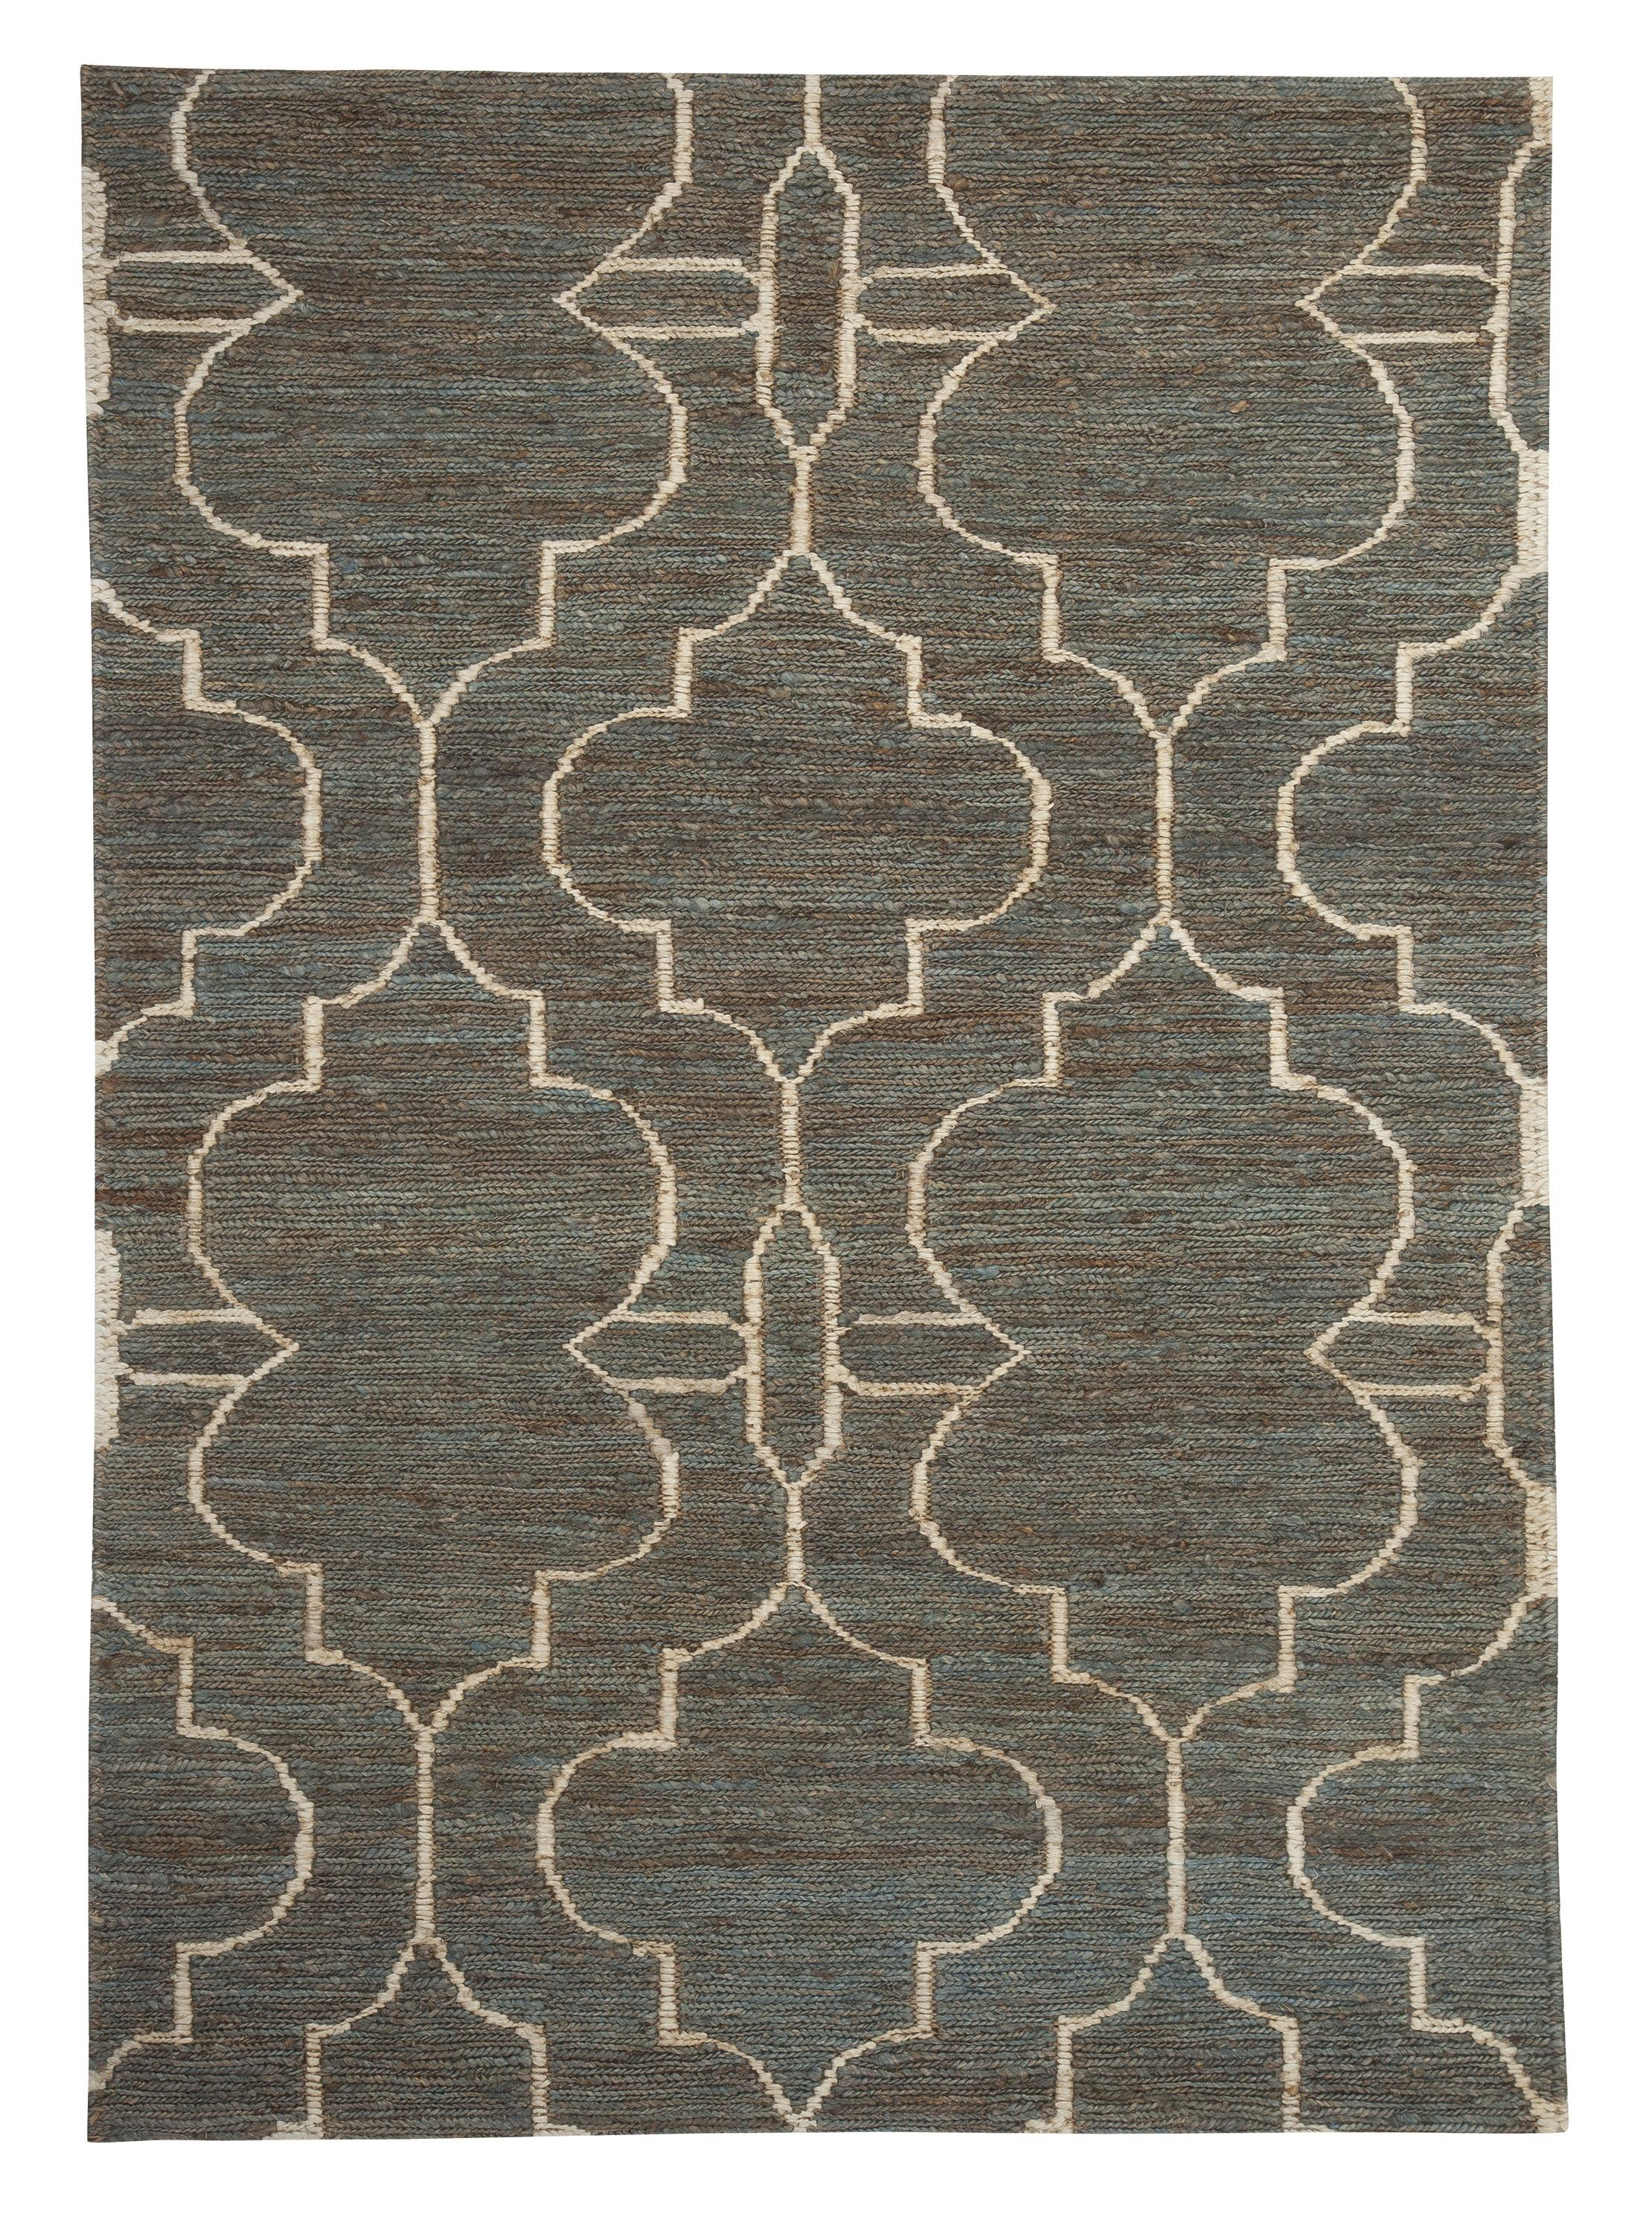 Signature Design by Ashley Contemporary Area Rugs Gillian Teal Large Rug - Item Number: R401471